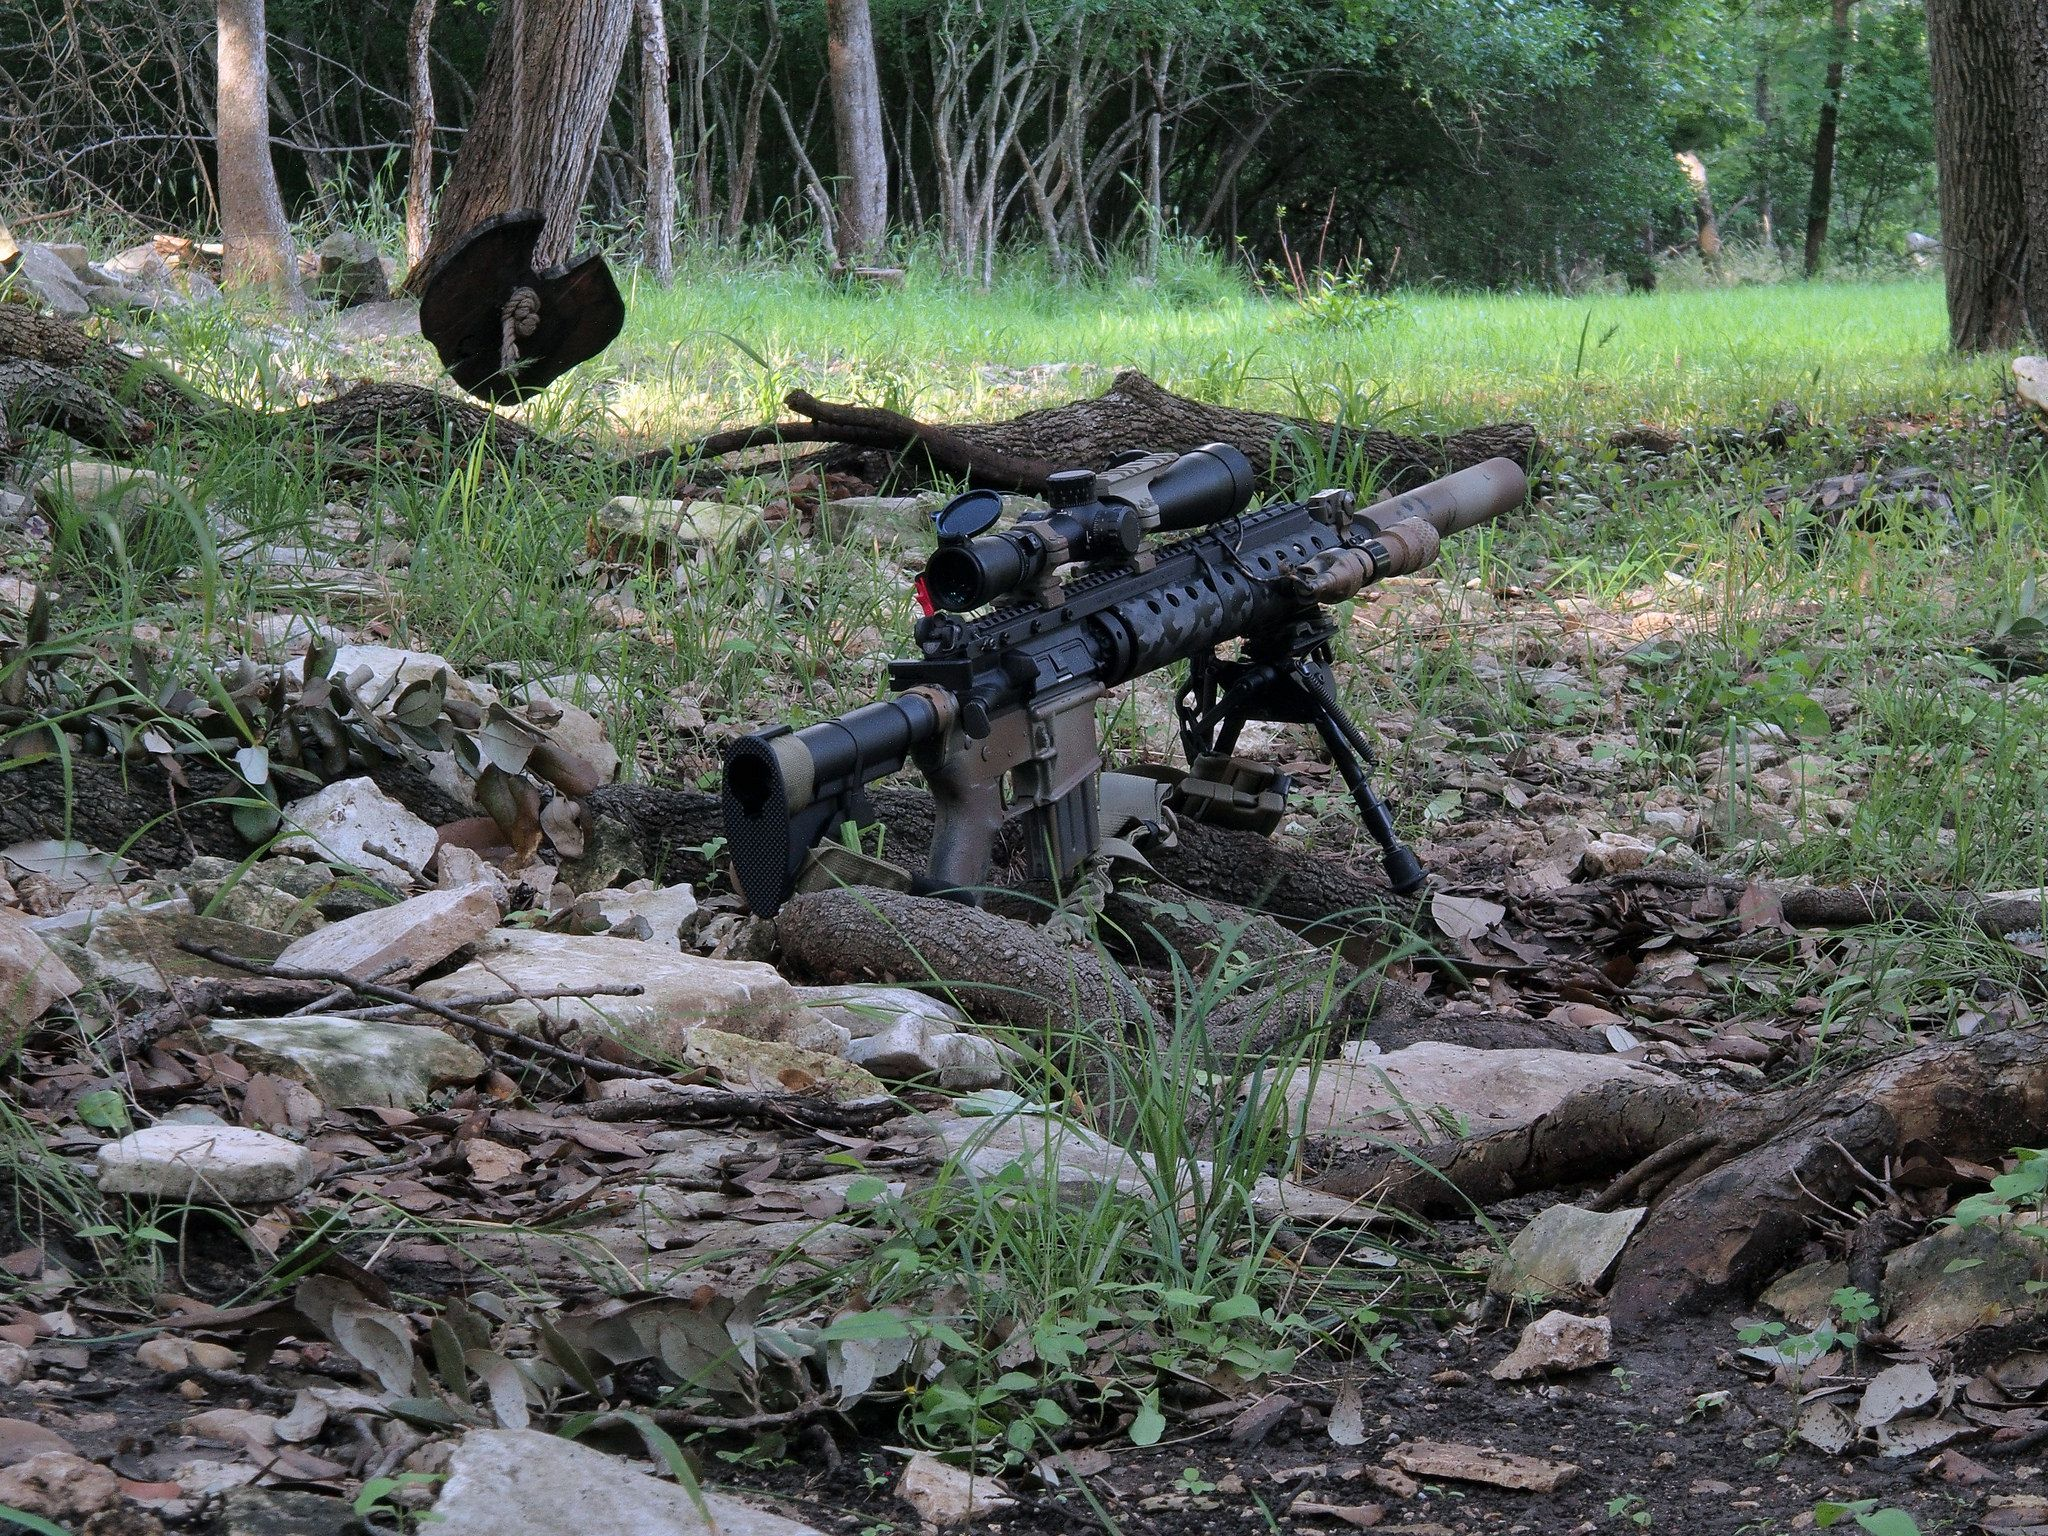 Official Mk12 Mod0, Mod1, ModH Photo and Discussion Thread ...